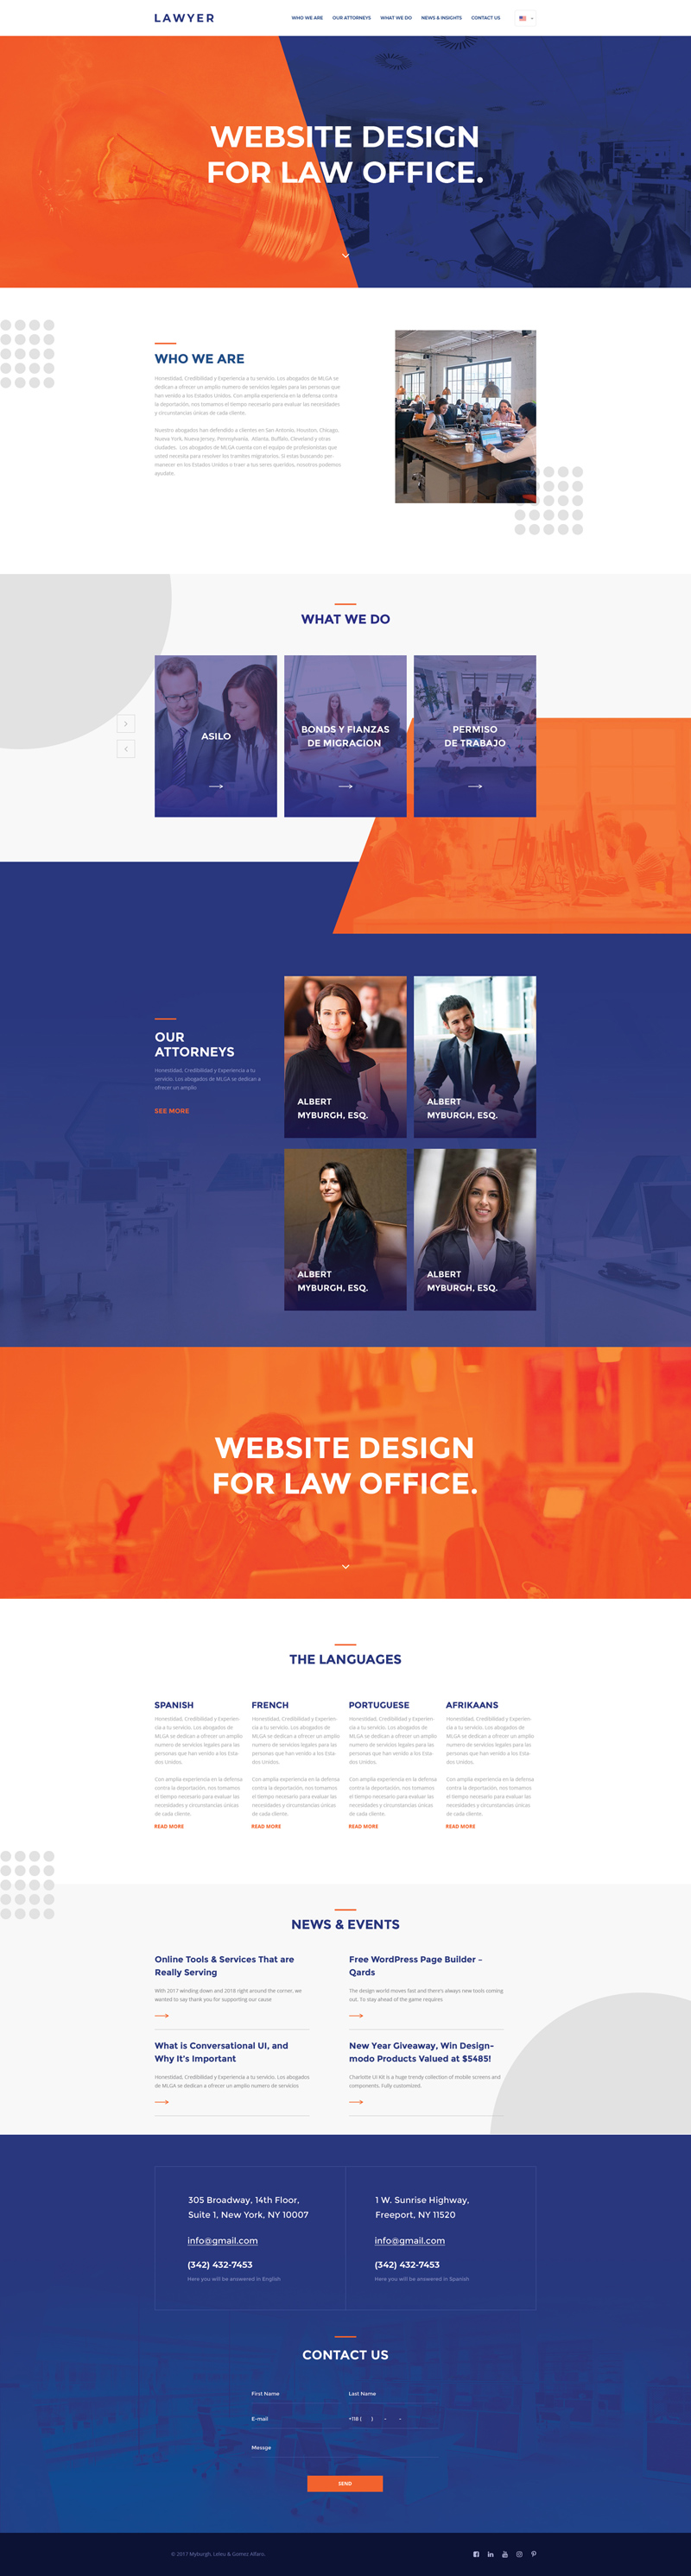 Lawyer Website Template PSD Freebie Supply - Lawyer website template